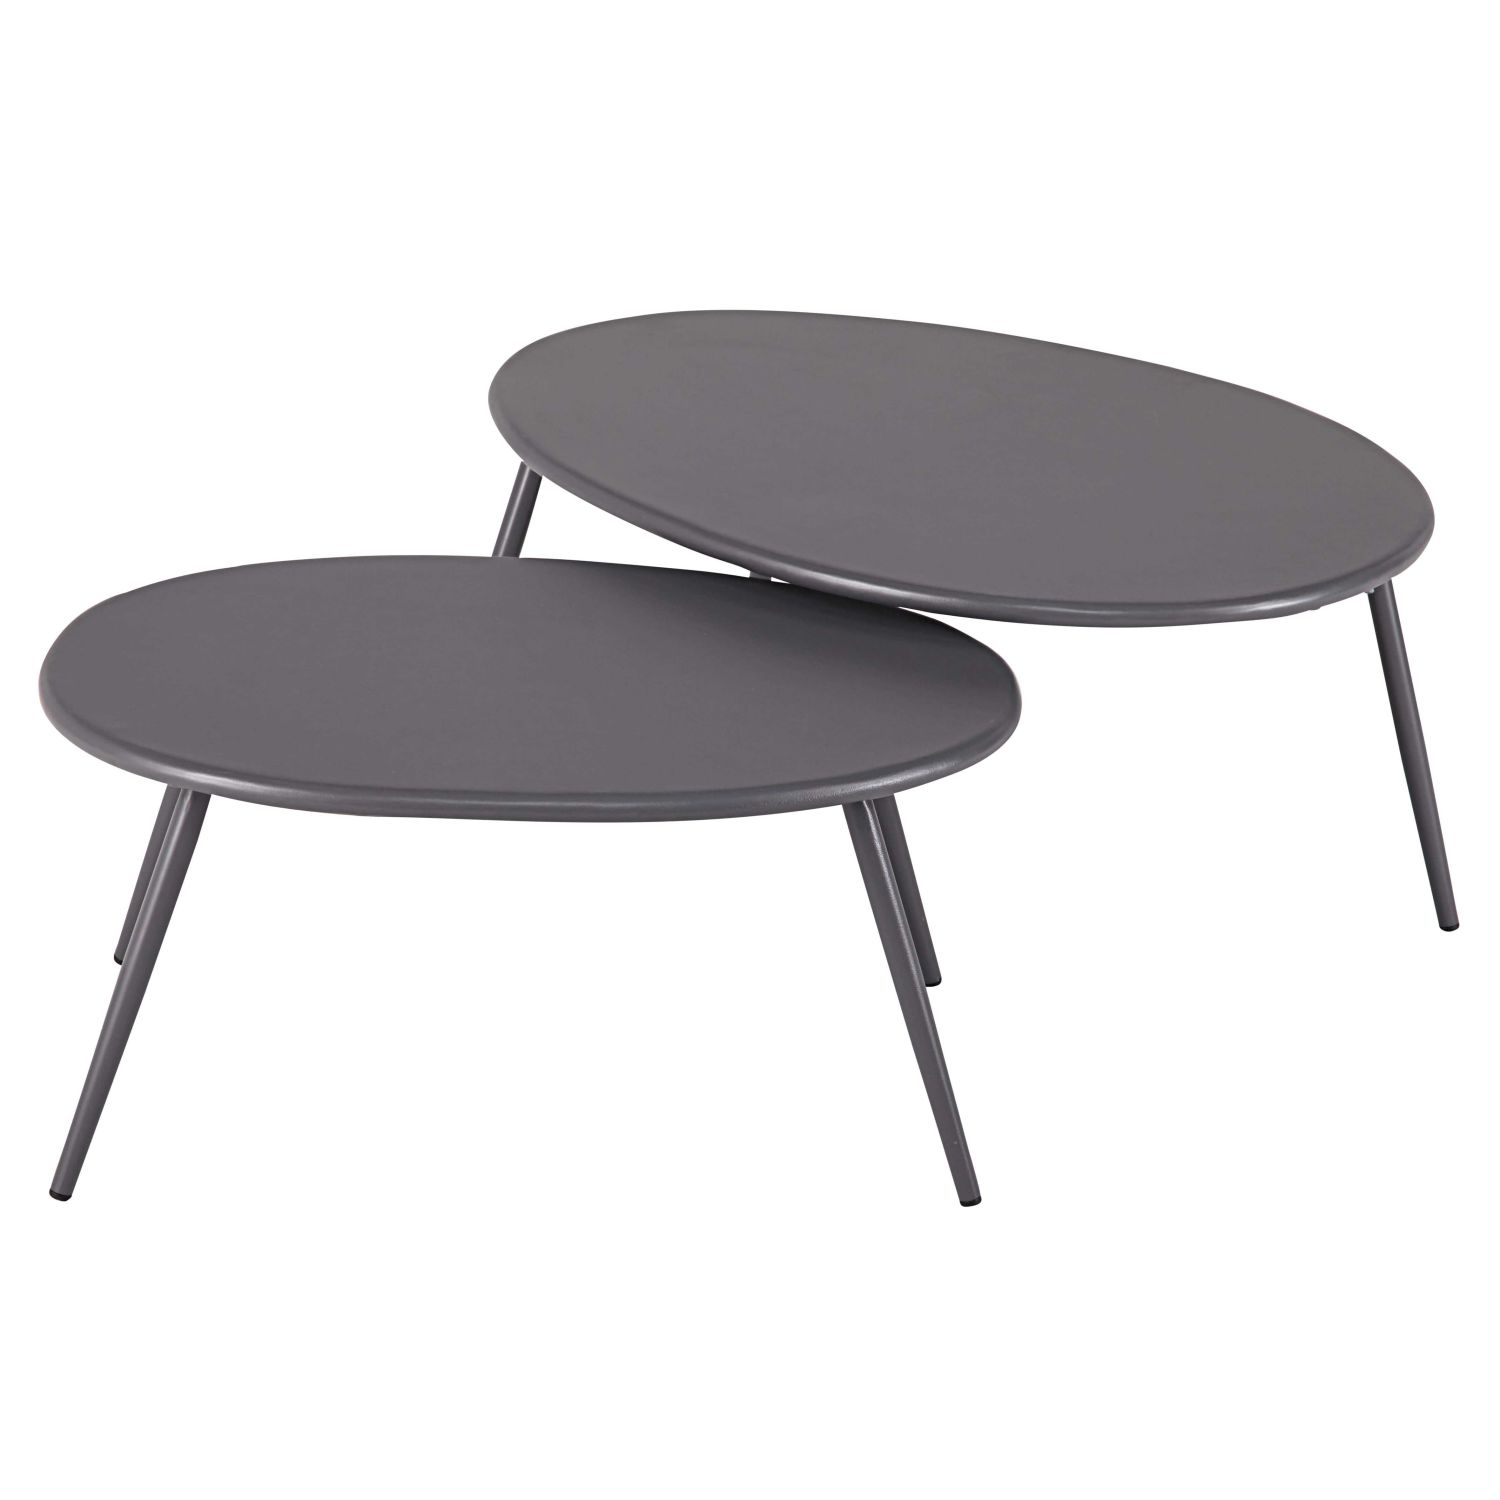 tables gigognes de jardin en m tal gris maisons du monde. Black Bedroom Furniture Sets. Home Design Ideas